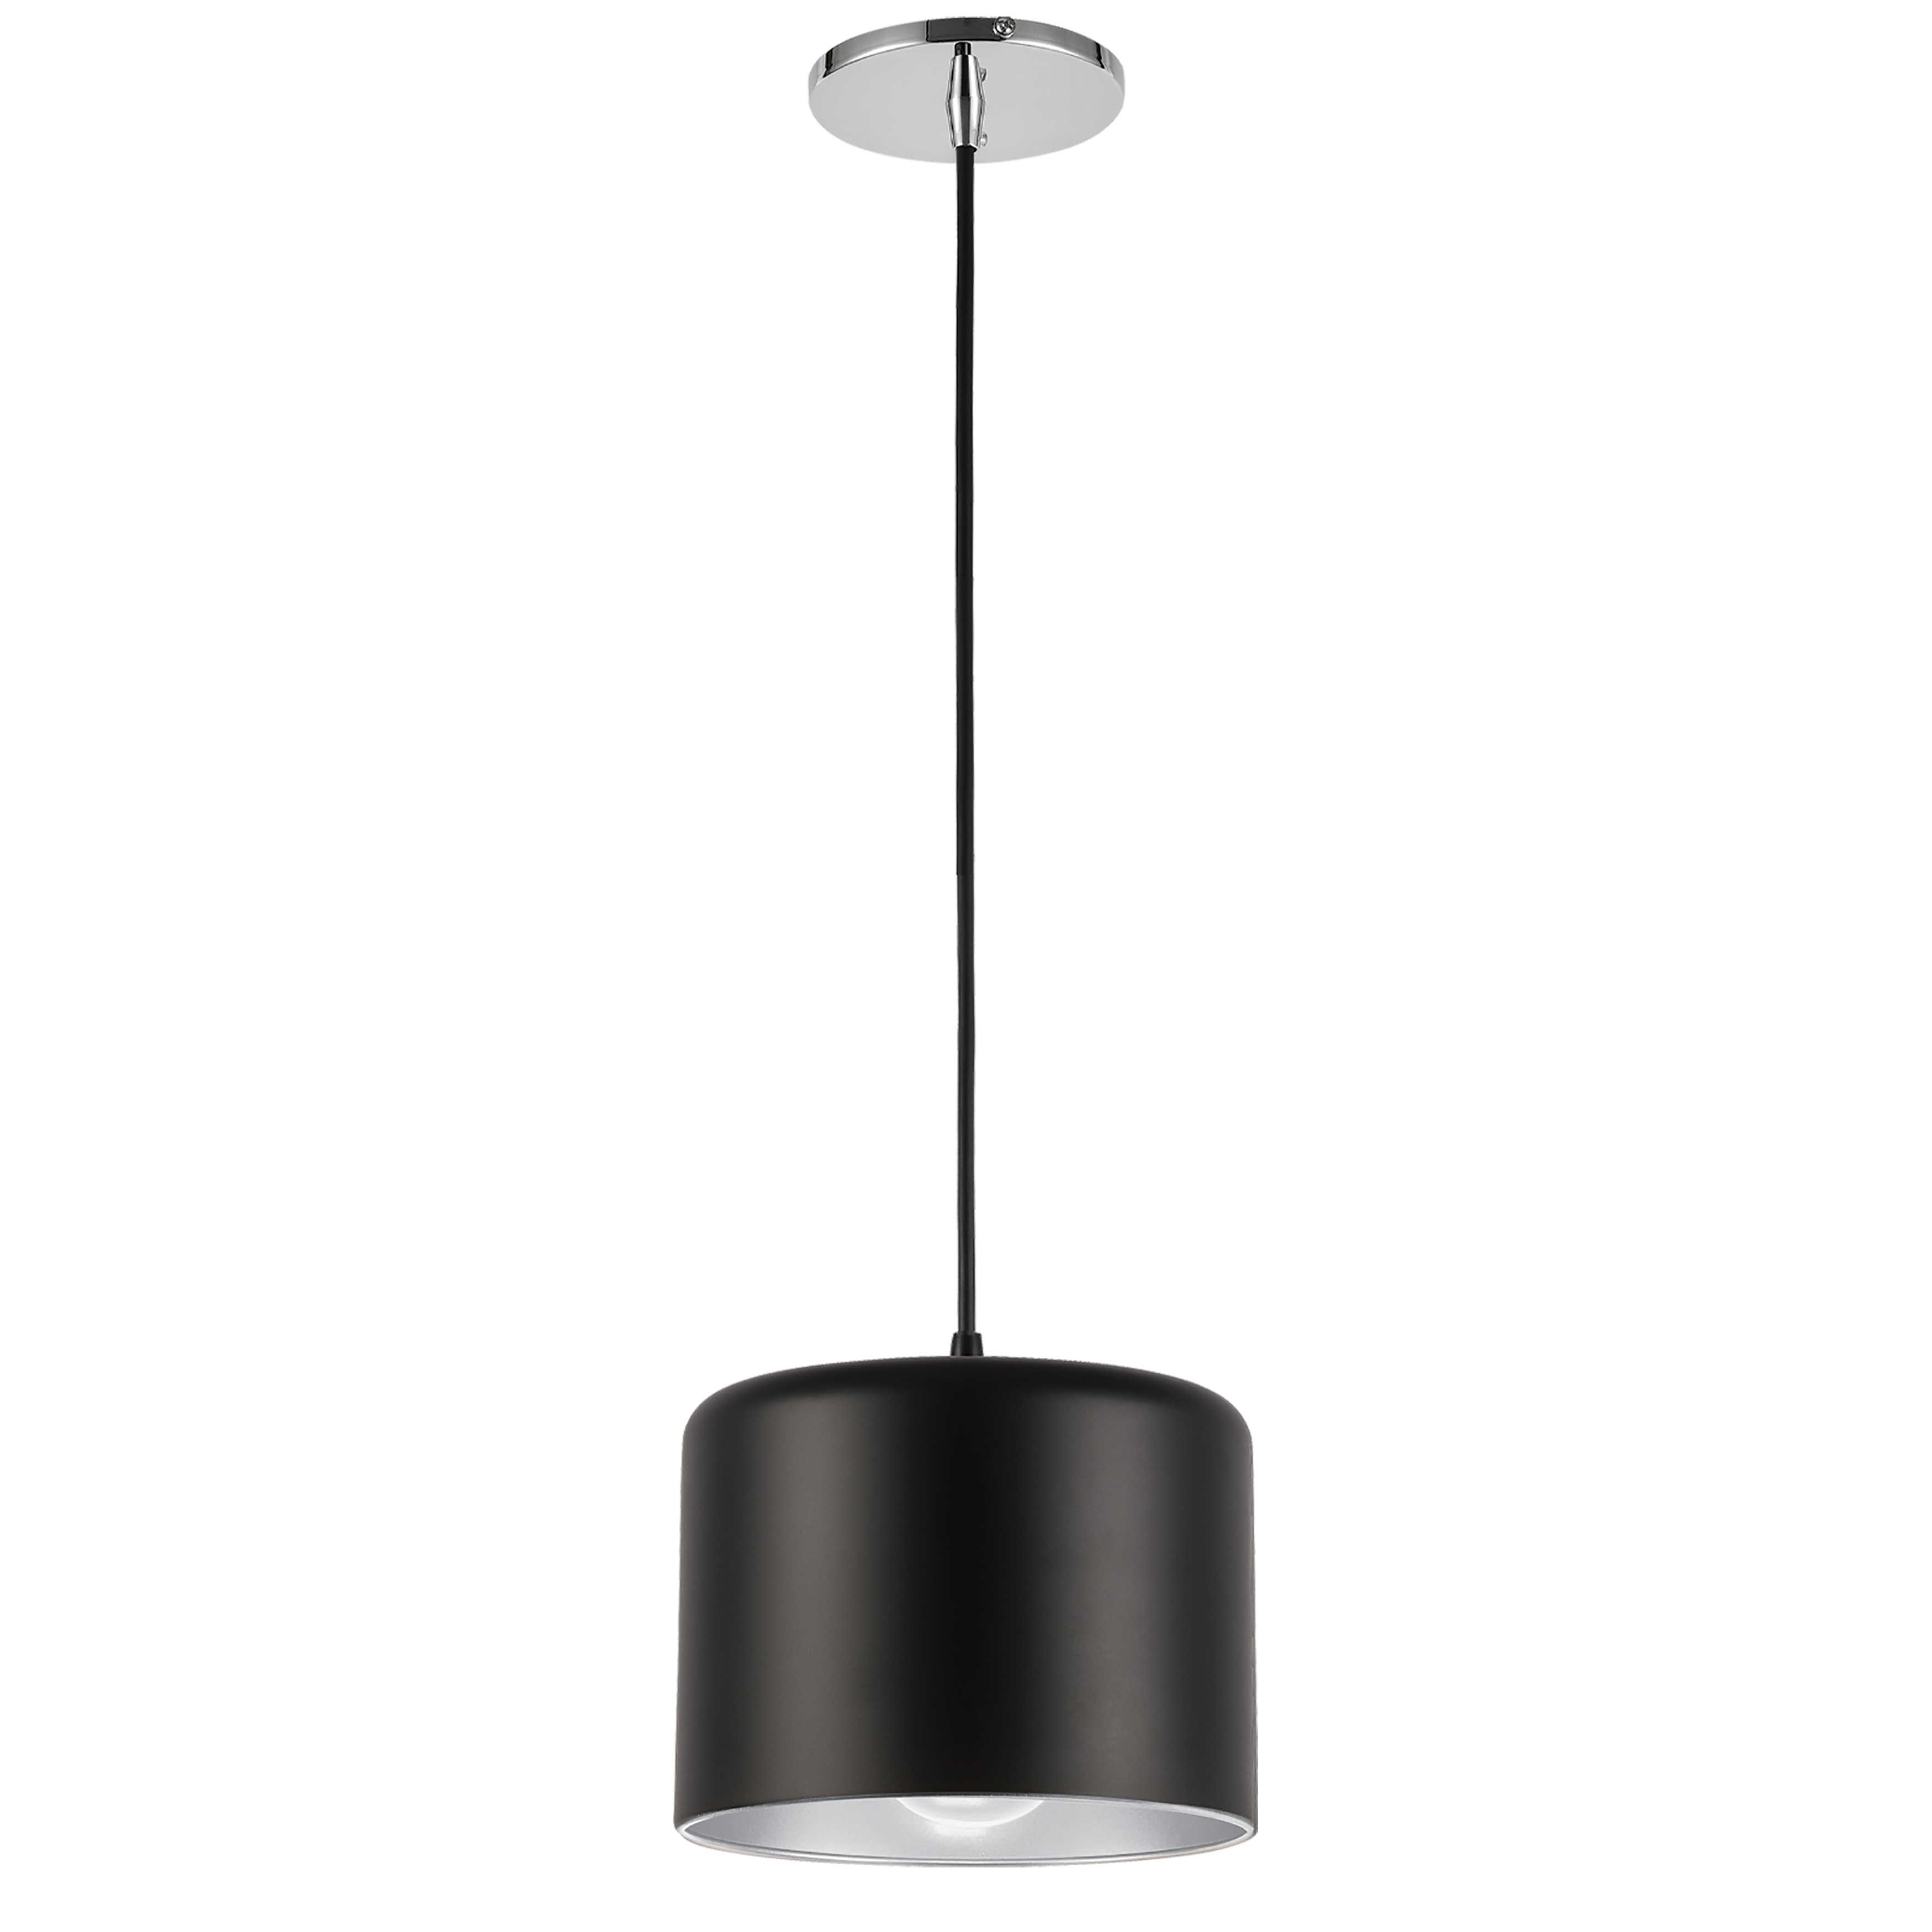 1 Light Incandescent Pendant, Polished Chrome with Matte Black & Silver Shade